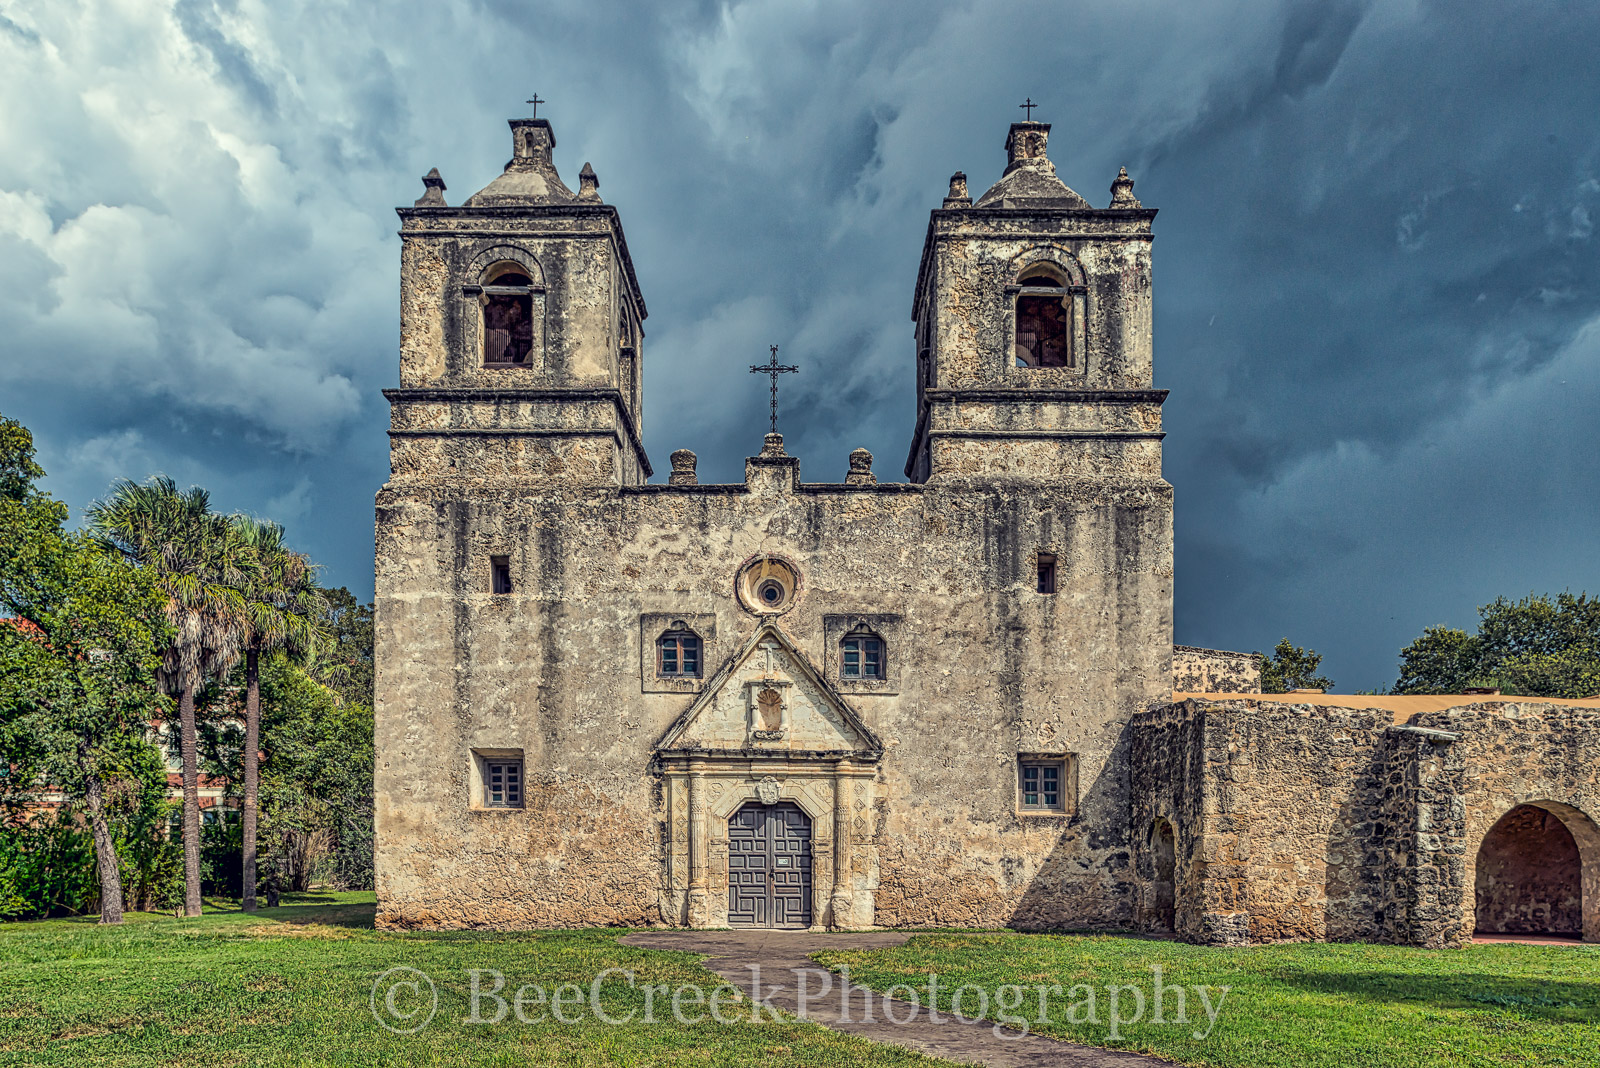 Battle of Concepcion, ConcepciÛn, Mission ConcepciÛn, National Historic Landmarks, San Antonio, downtown, historic, indians, landmark, mexicans, spanish missions, stormy skies, texas missions, texians, photo